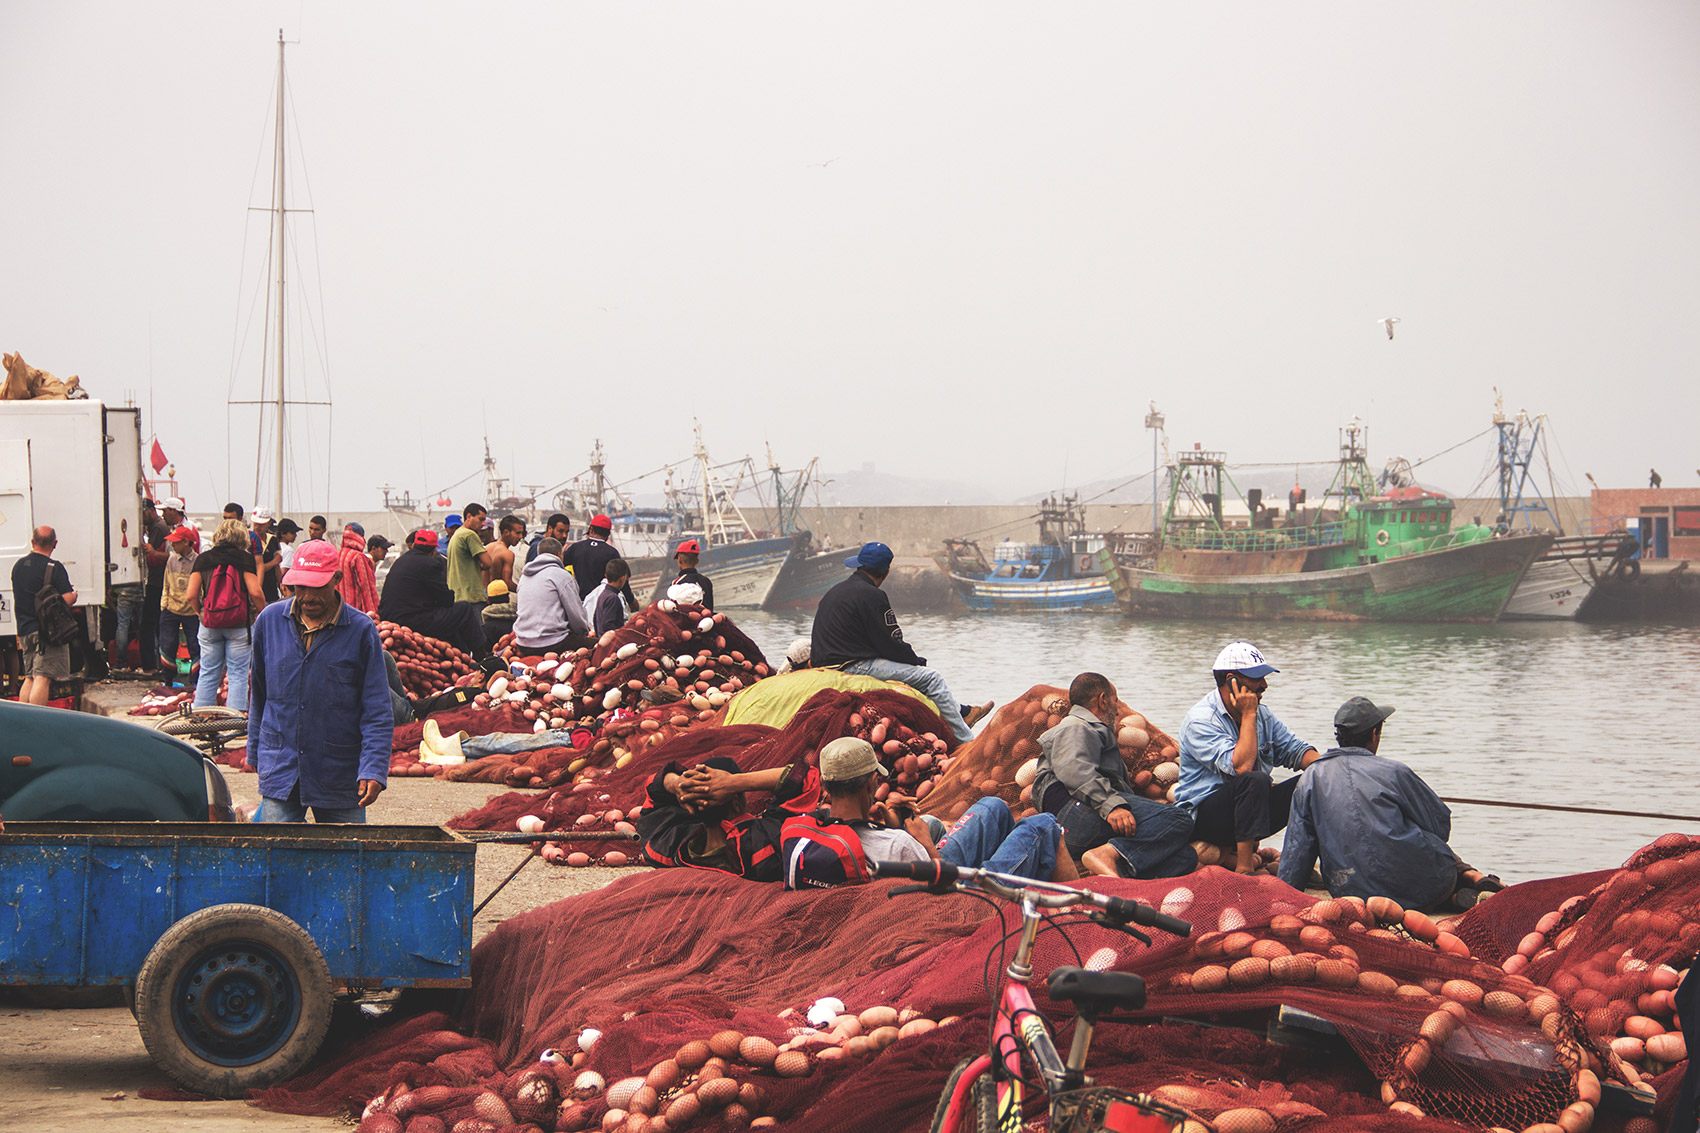 Fishermen in the port of Essaouira